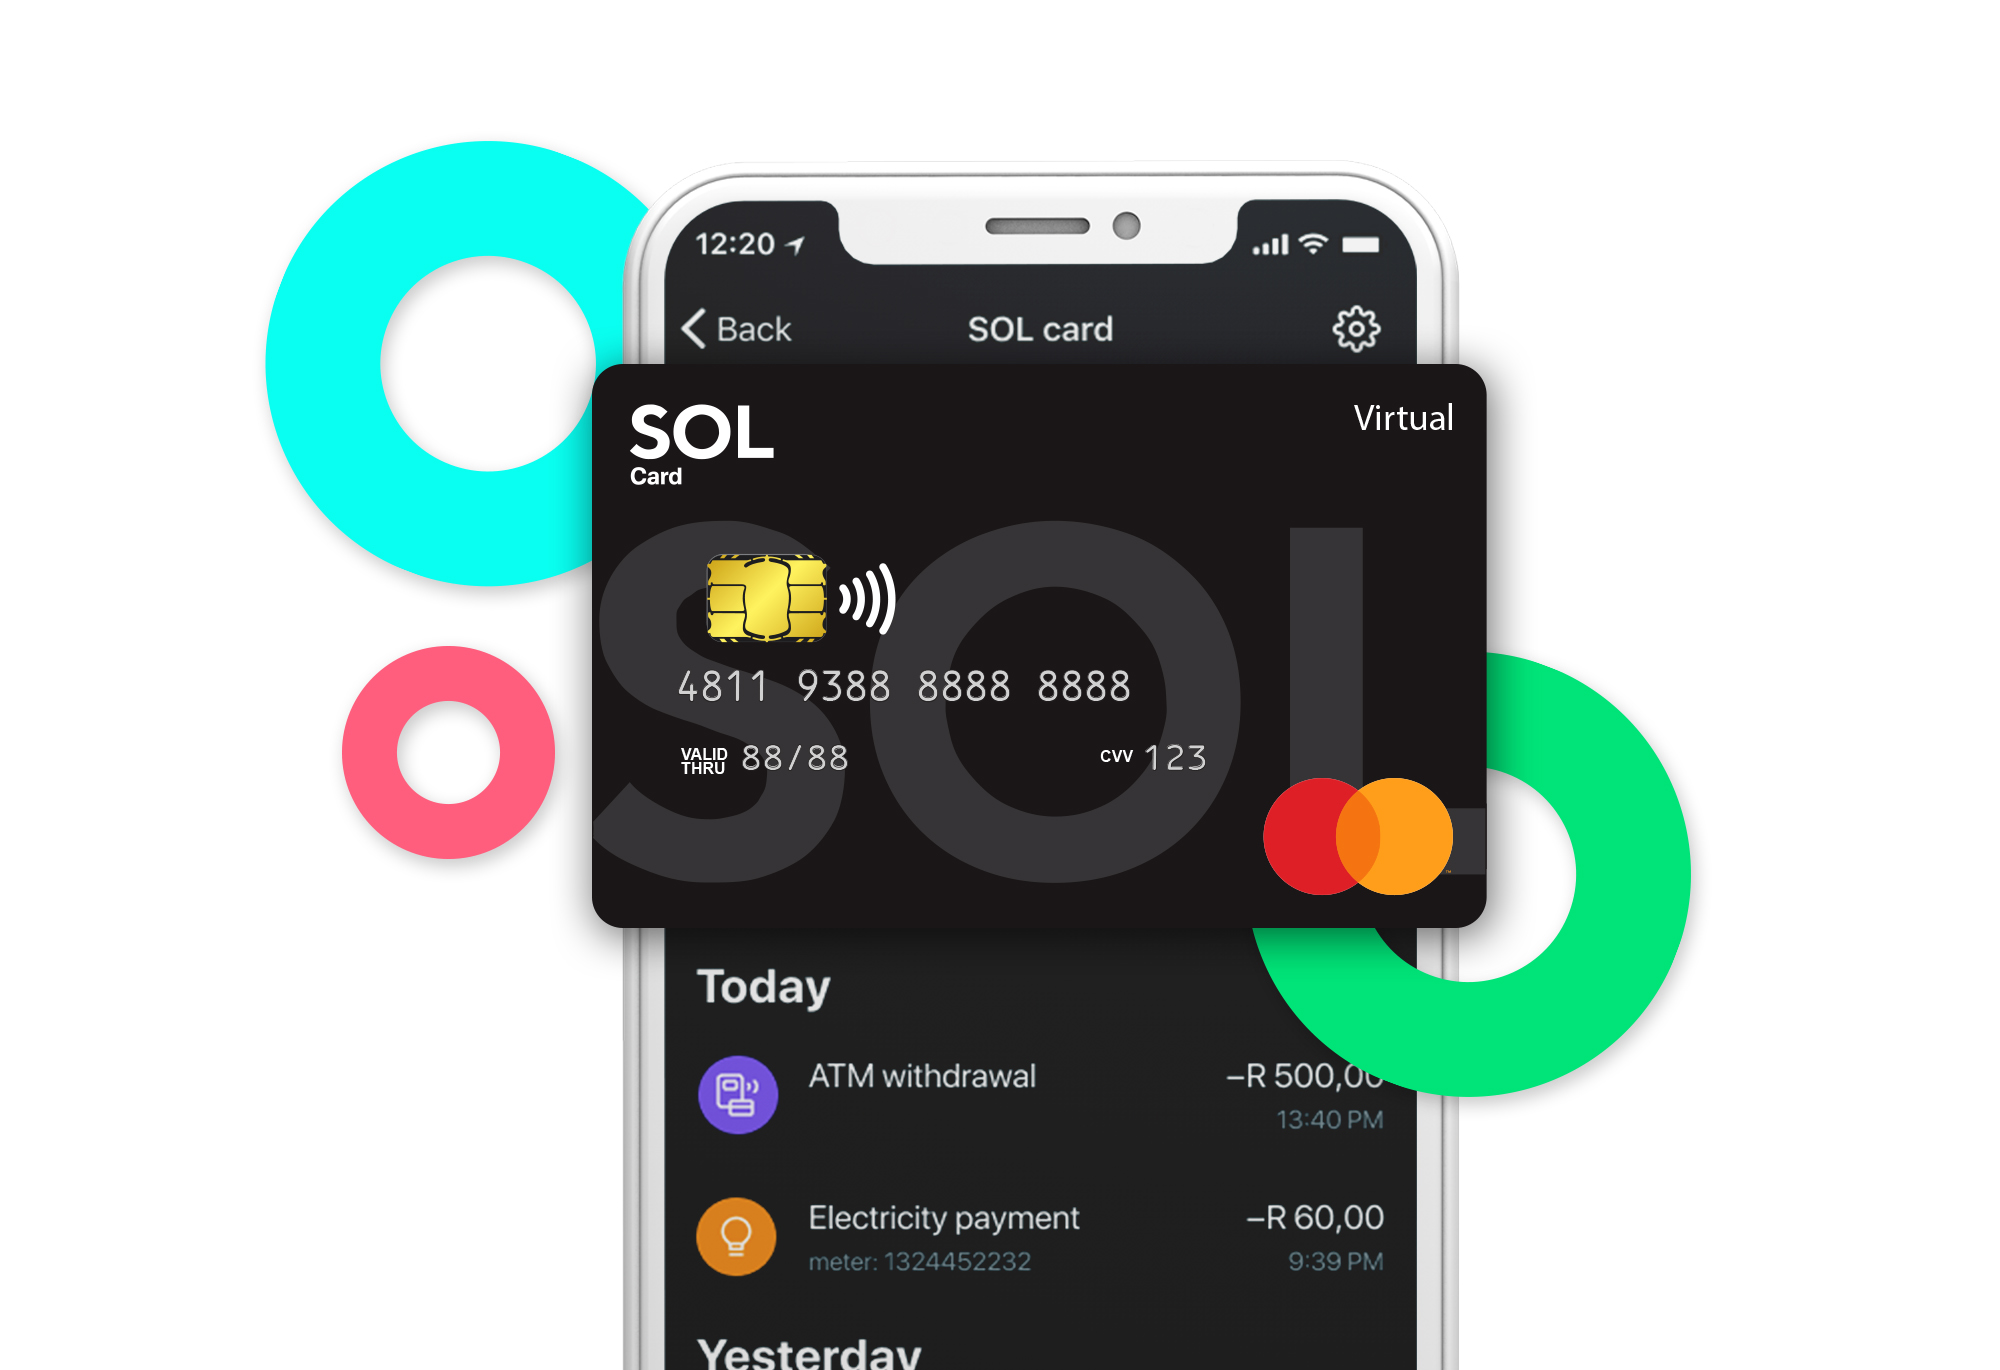 Fintech Startup SOL Announces Rebrand with Exciting New Virtual Card Offering